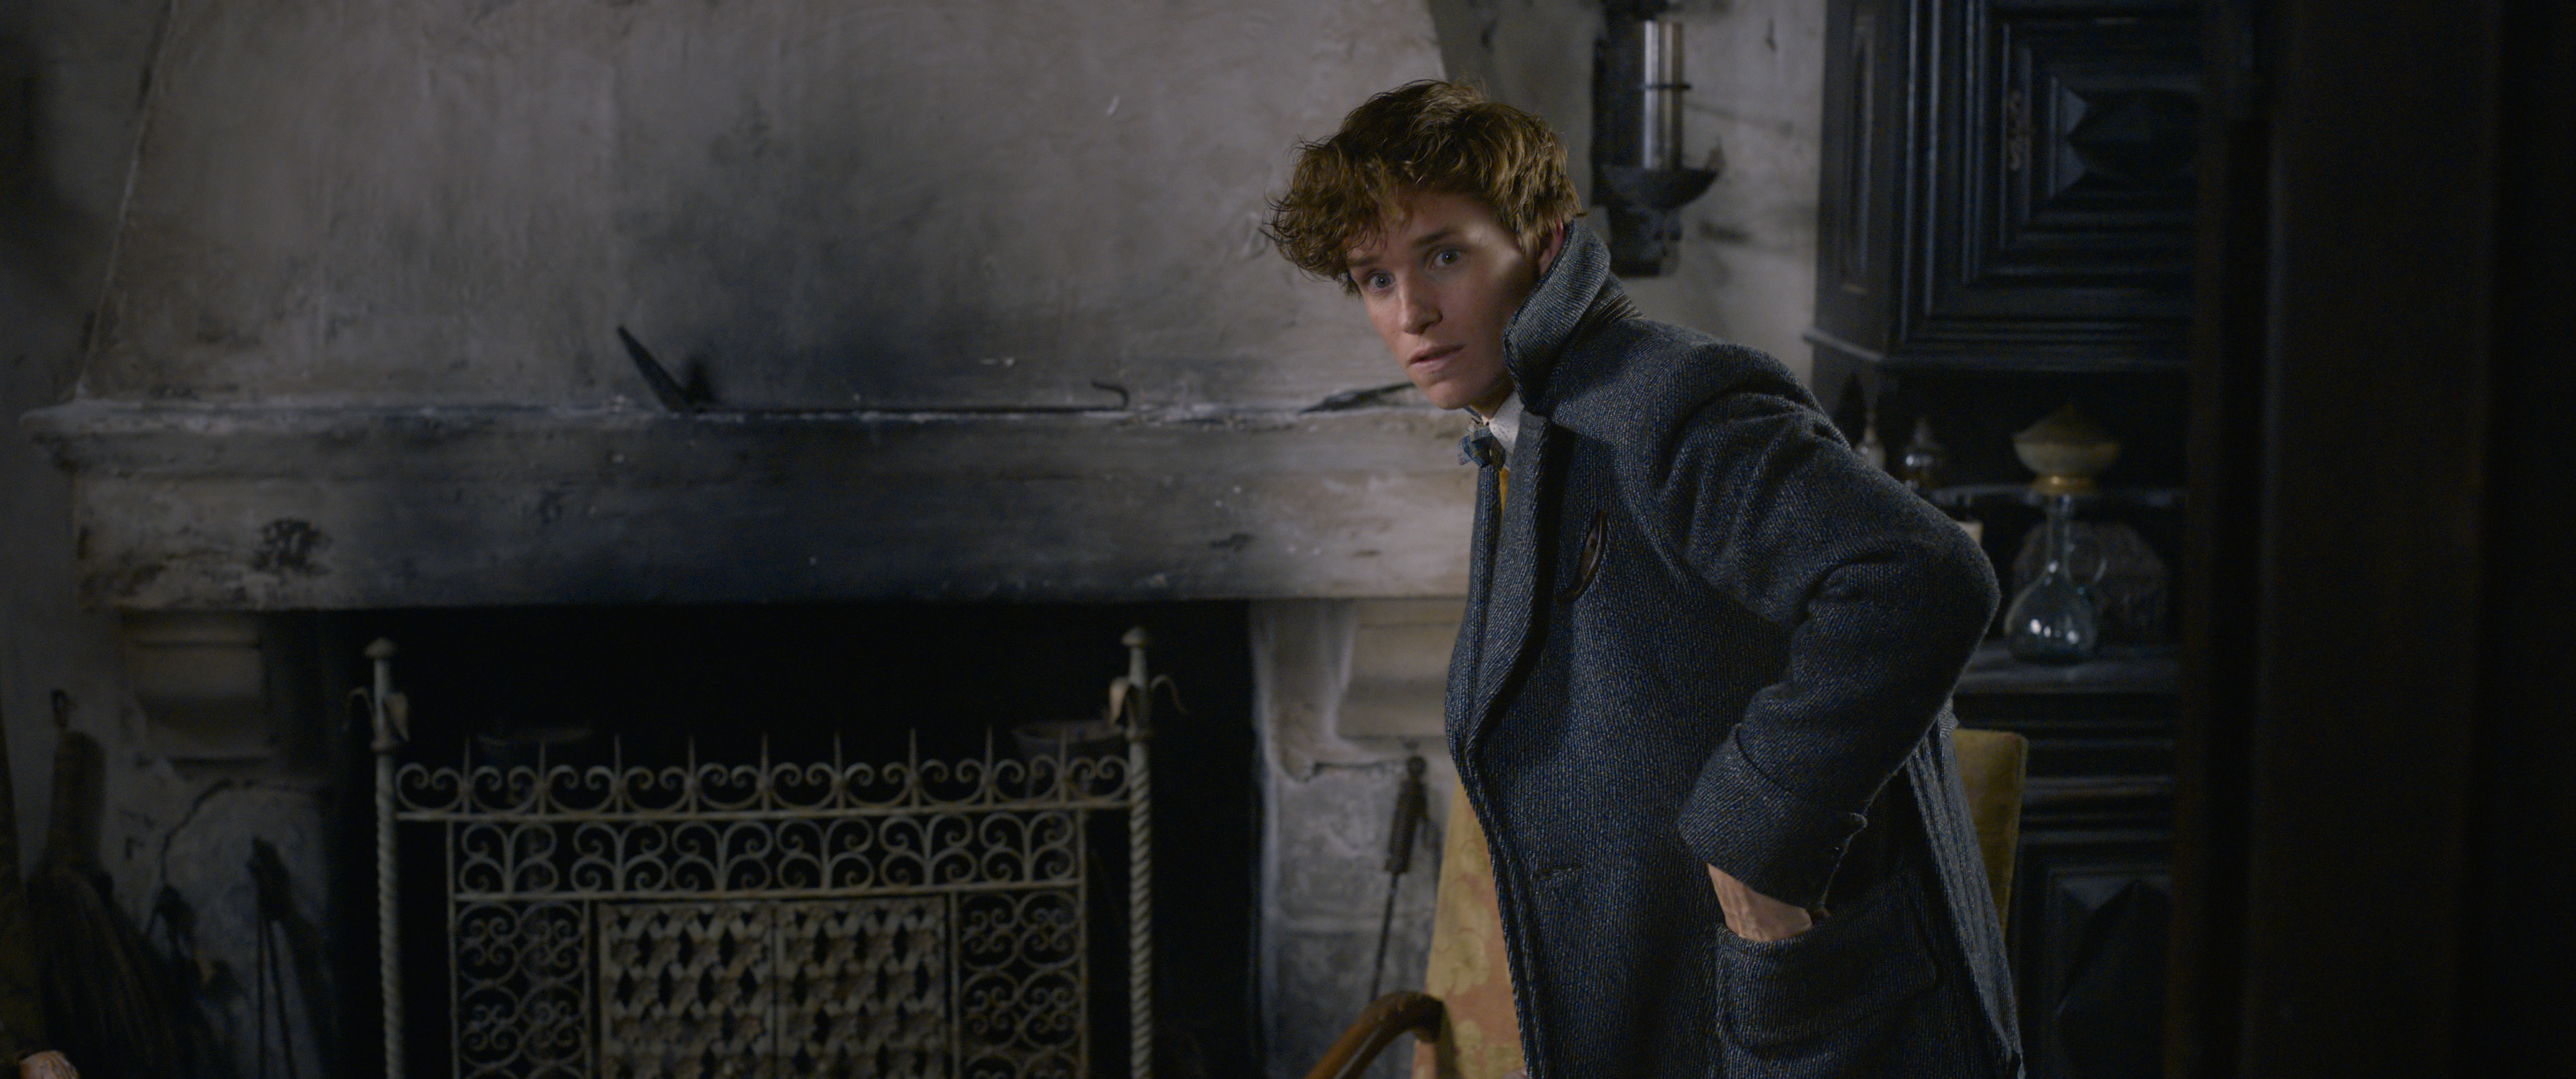 See the film stills of 'Fantastic Beasts: The Crimes of Grindelwald'